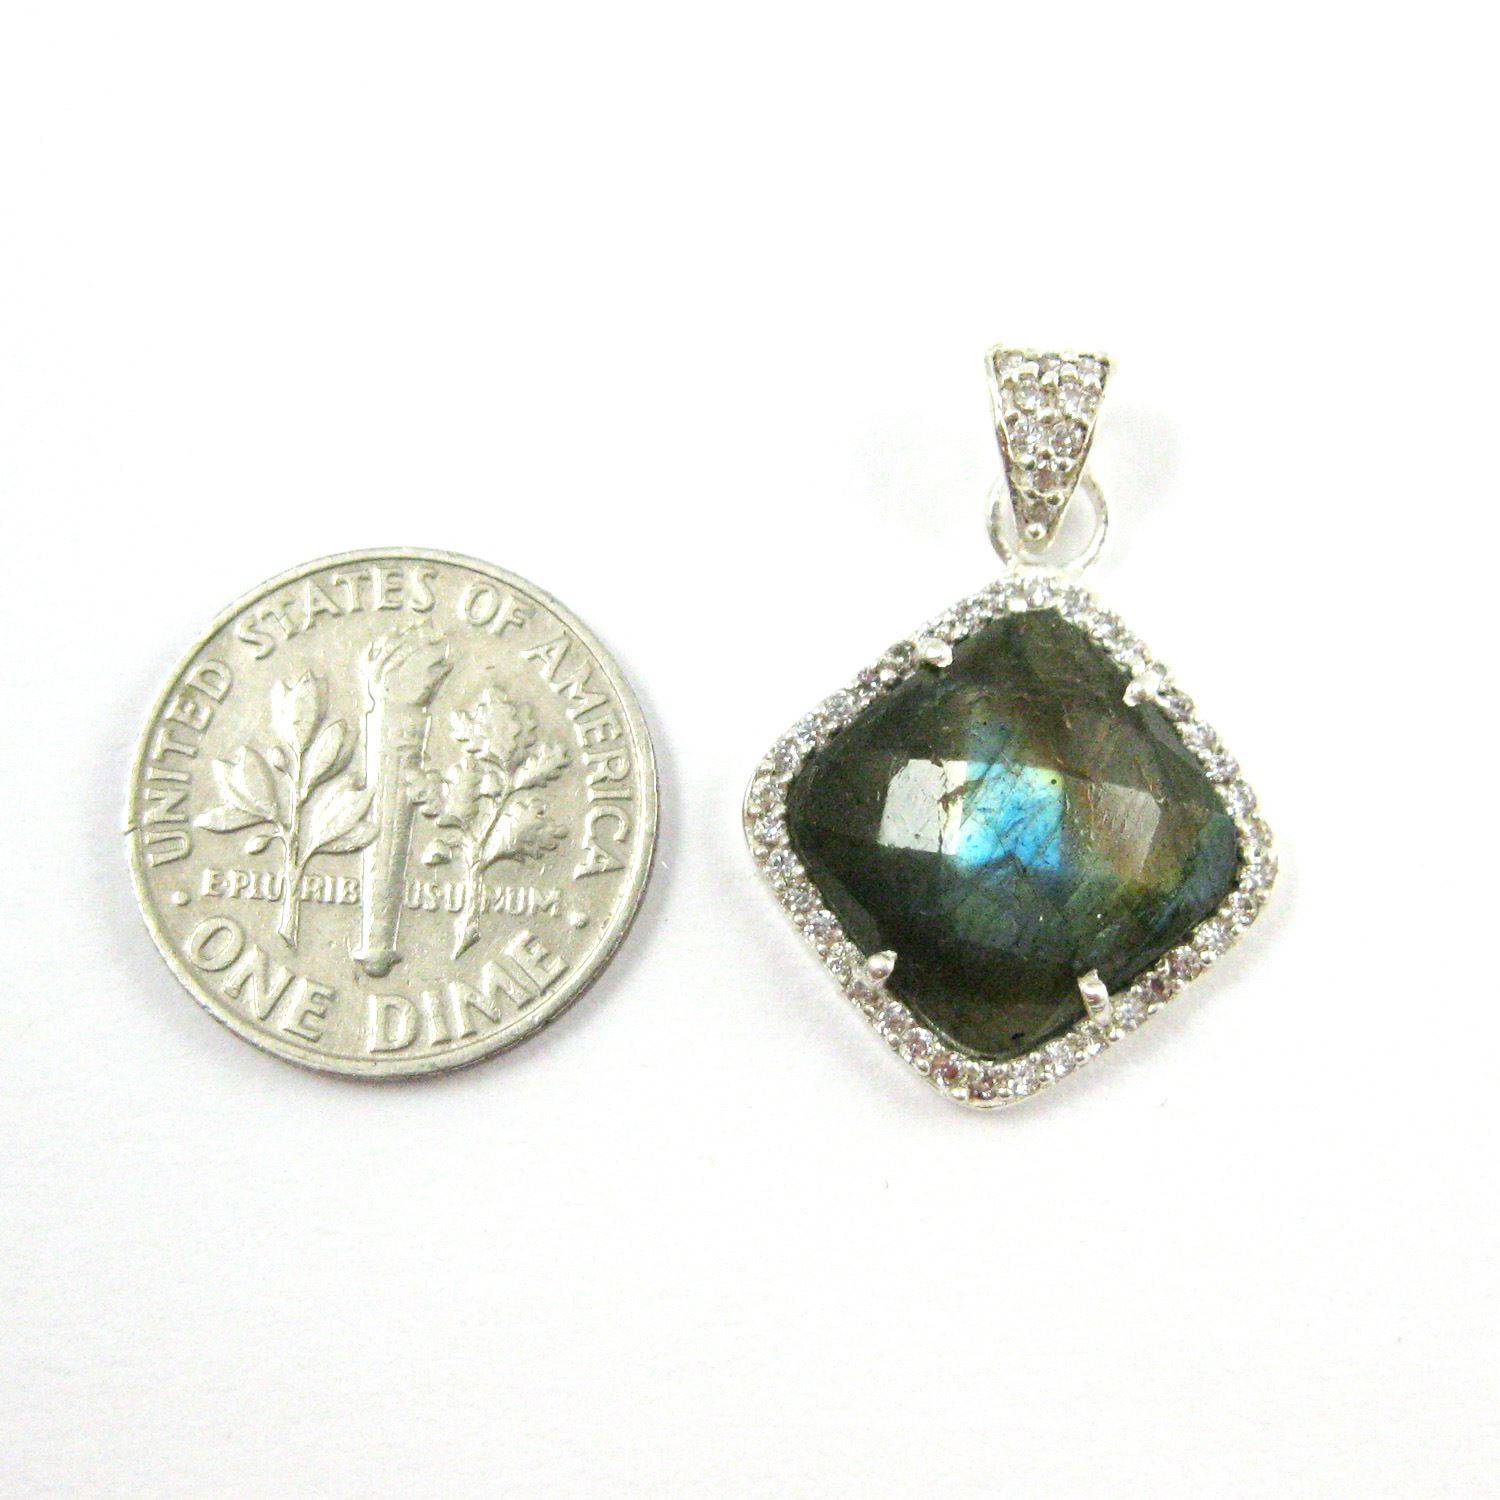 Sterling Silver Pave Bezel Gemstone Pendant - Cubic Zirconia Pave Setting -  Diamond Shape Faceted Stone-Labradorite- 17mm